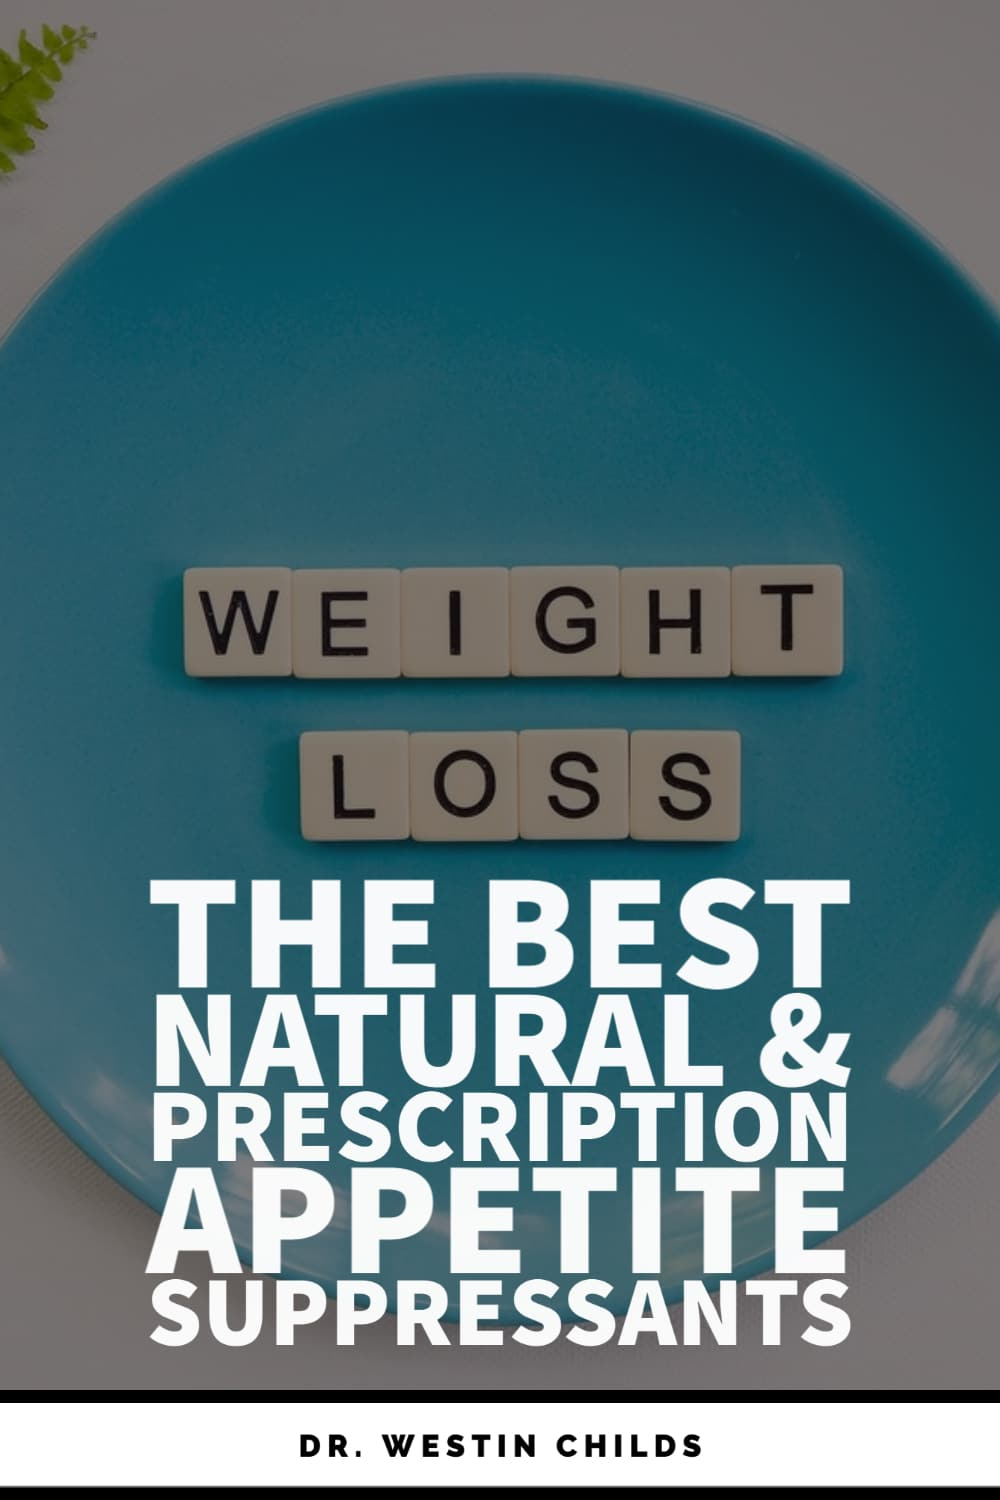 the best natural and prescription appetite suppressants